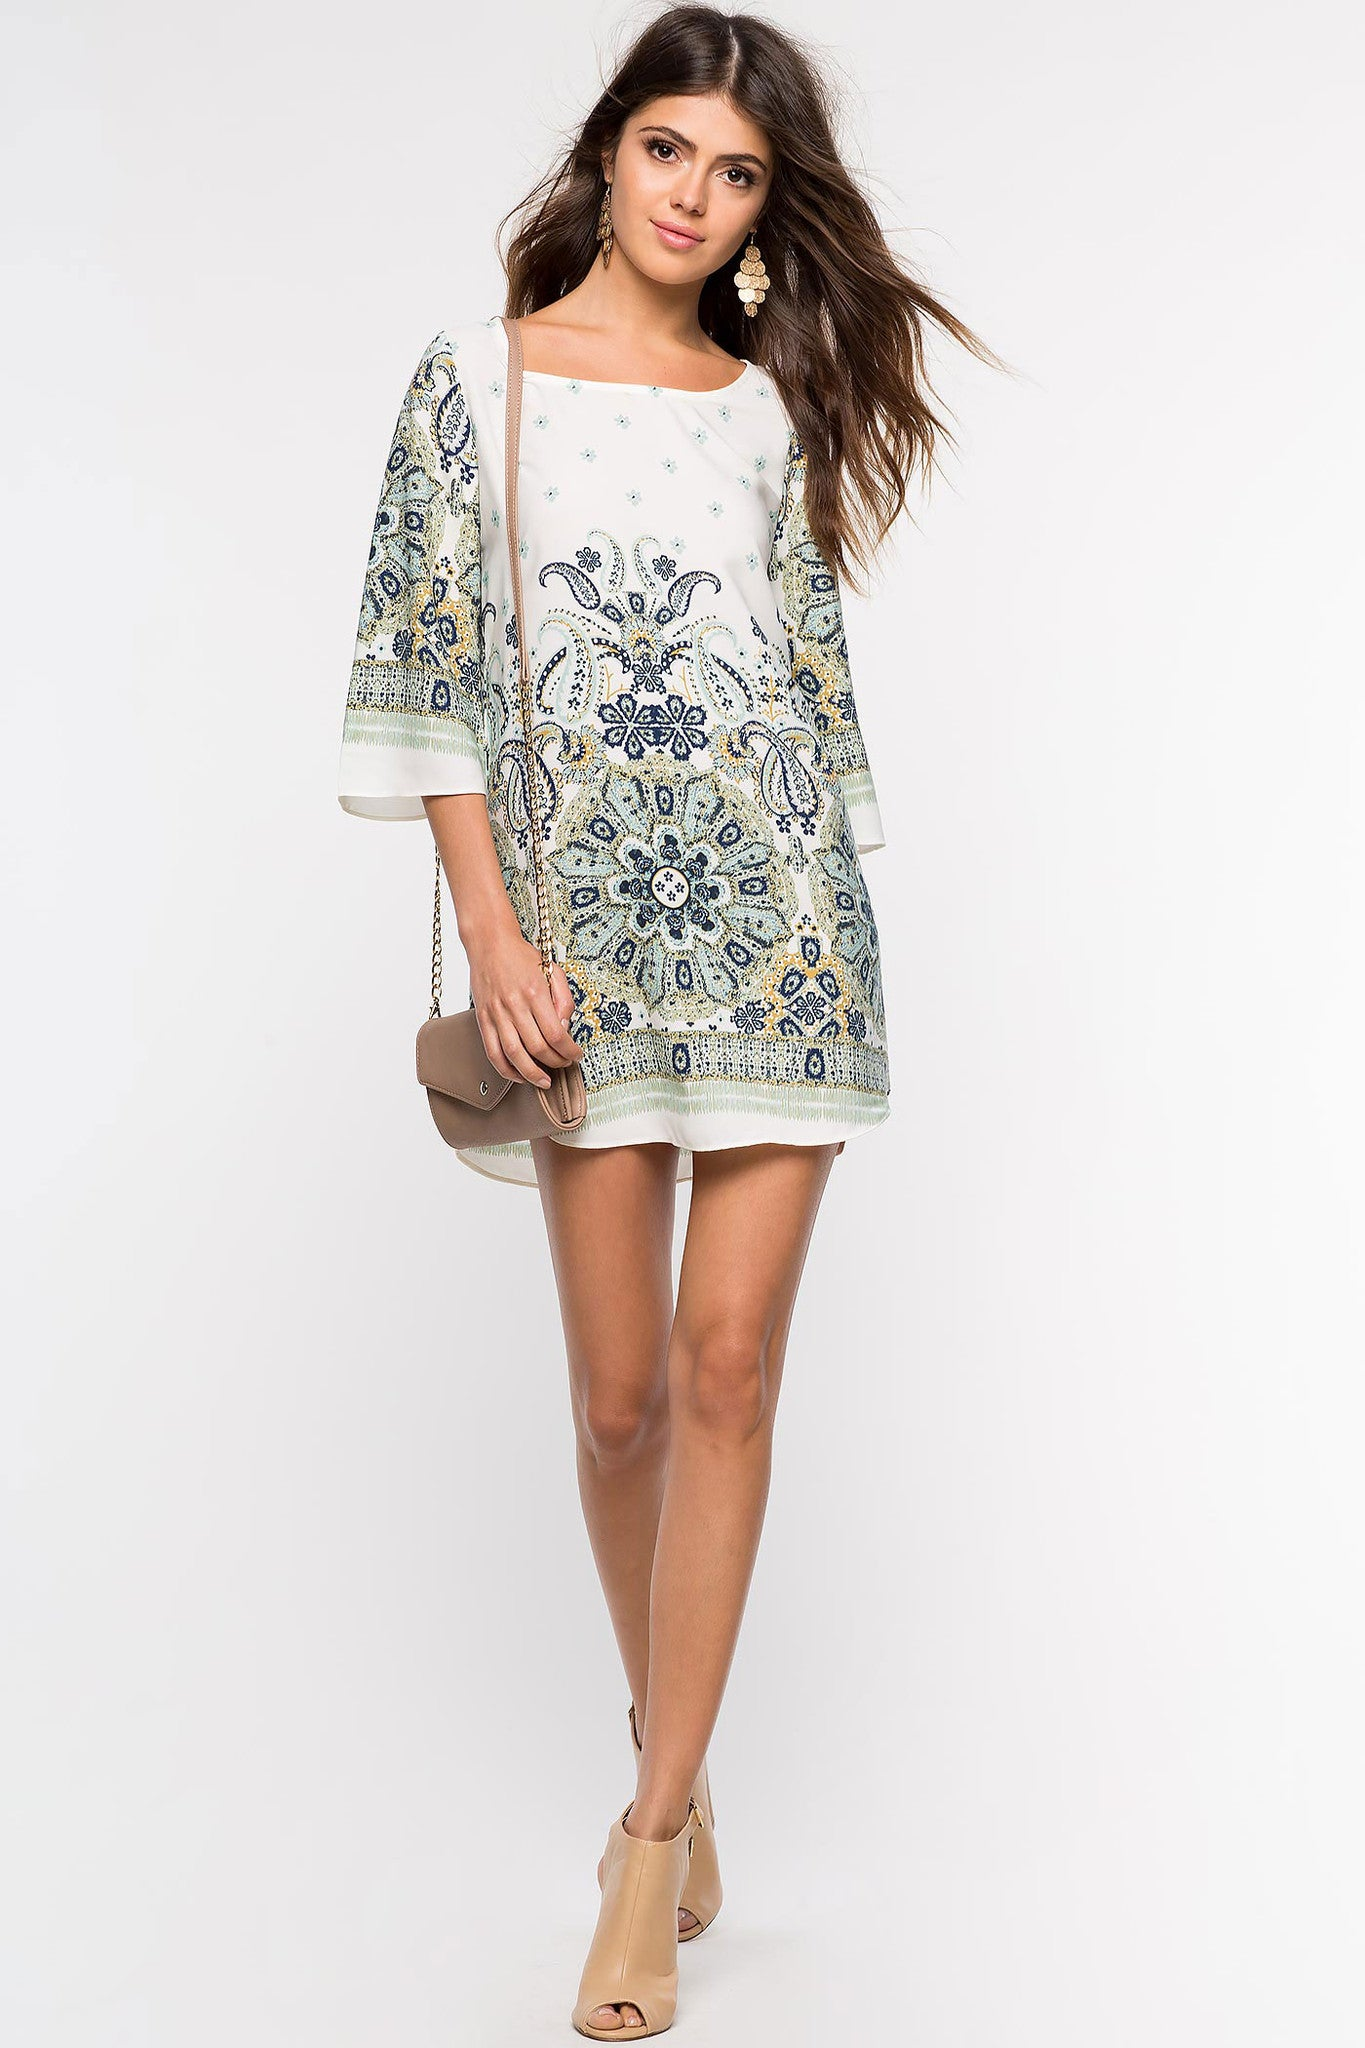 Womens Casual street style outfit long sleeve paisley print mini shift tunic dress in green print. Front view